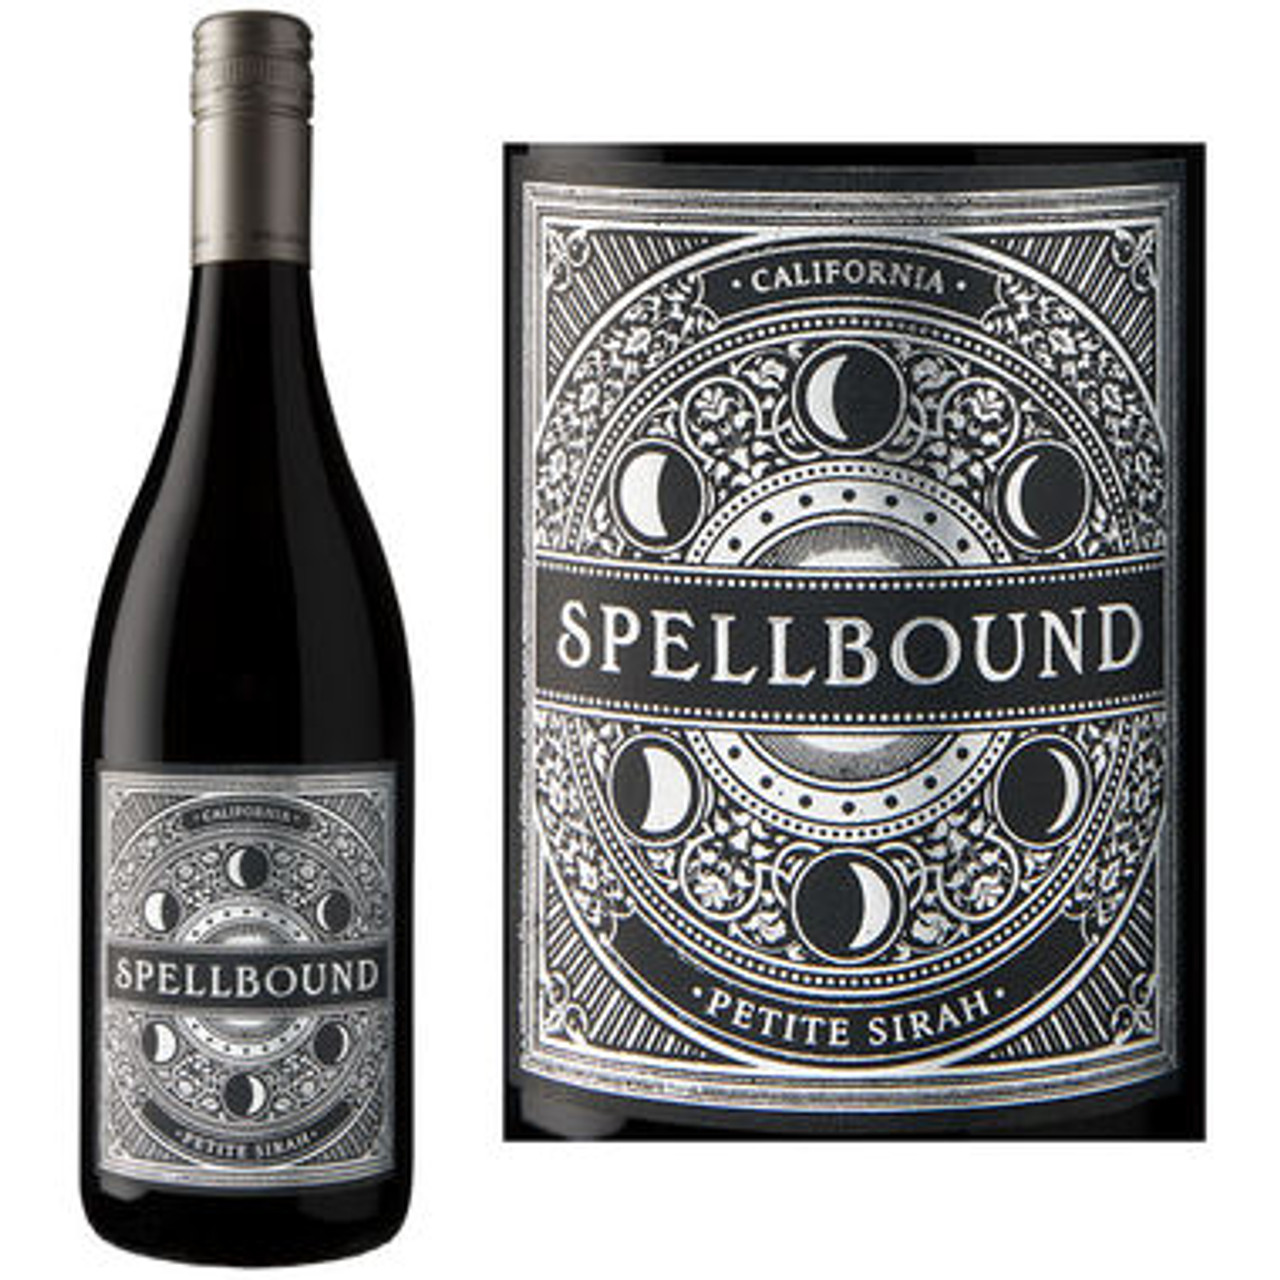 12 Bottle Case Spellbound California Petite Sirah 2016 w/ Free Shipping